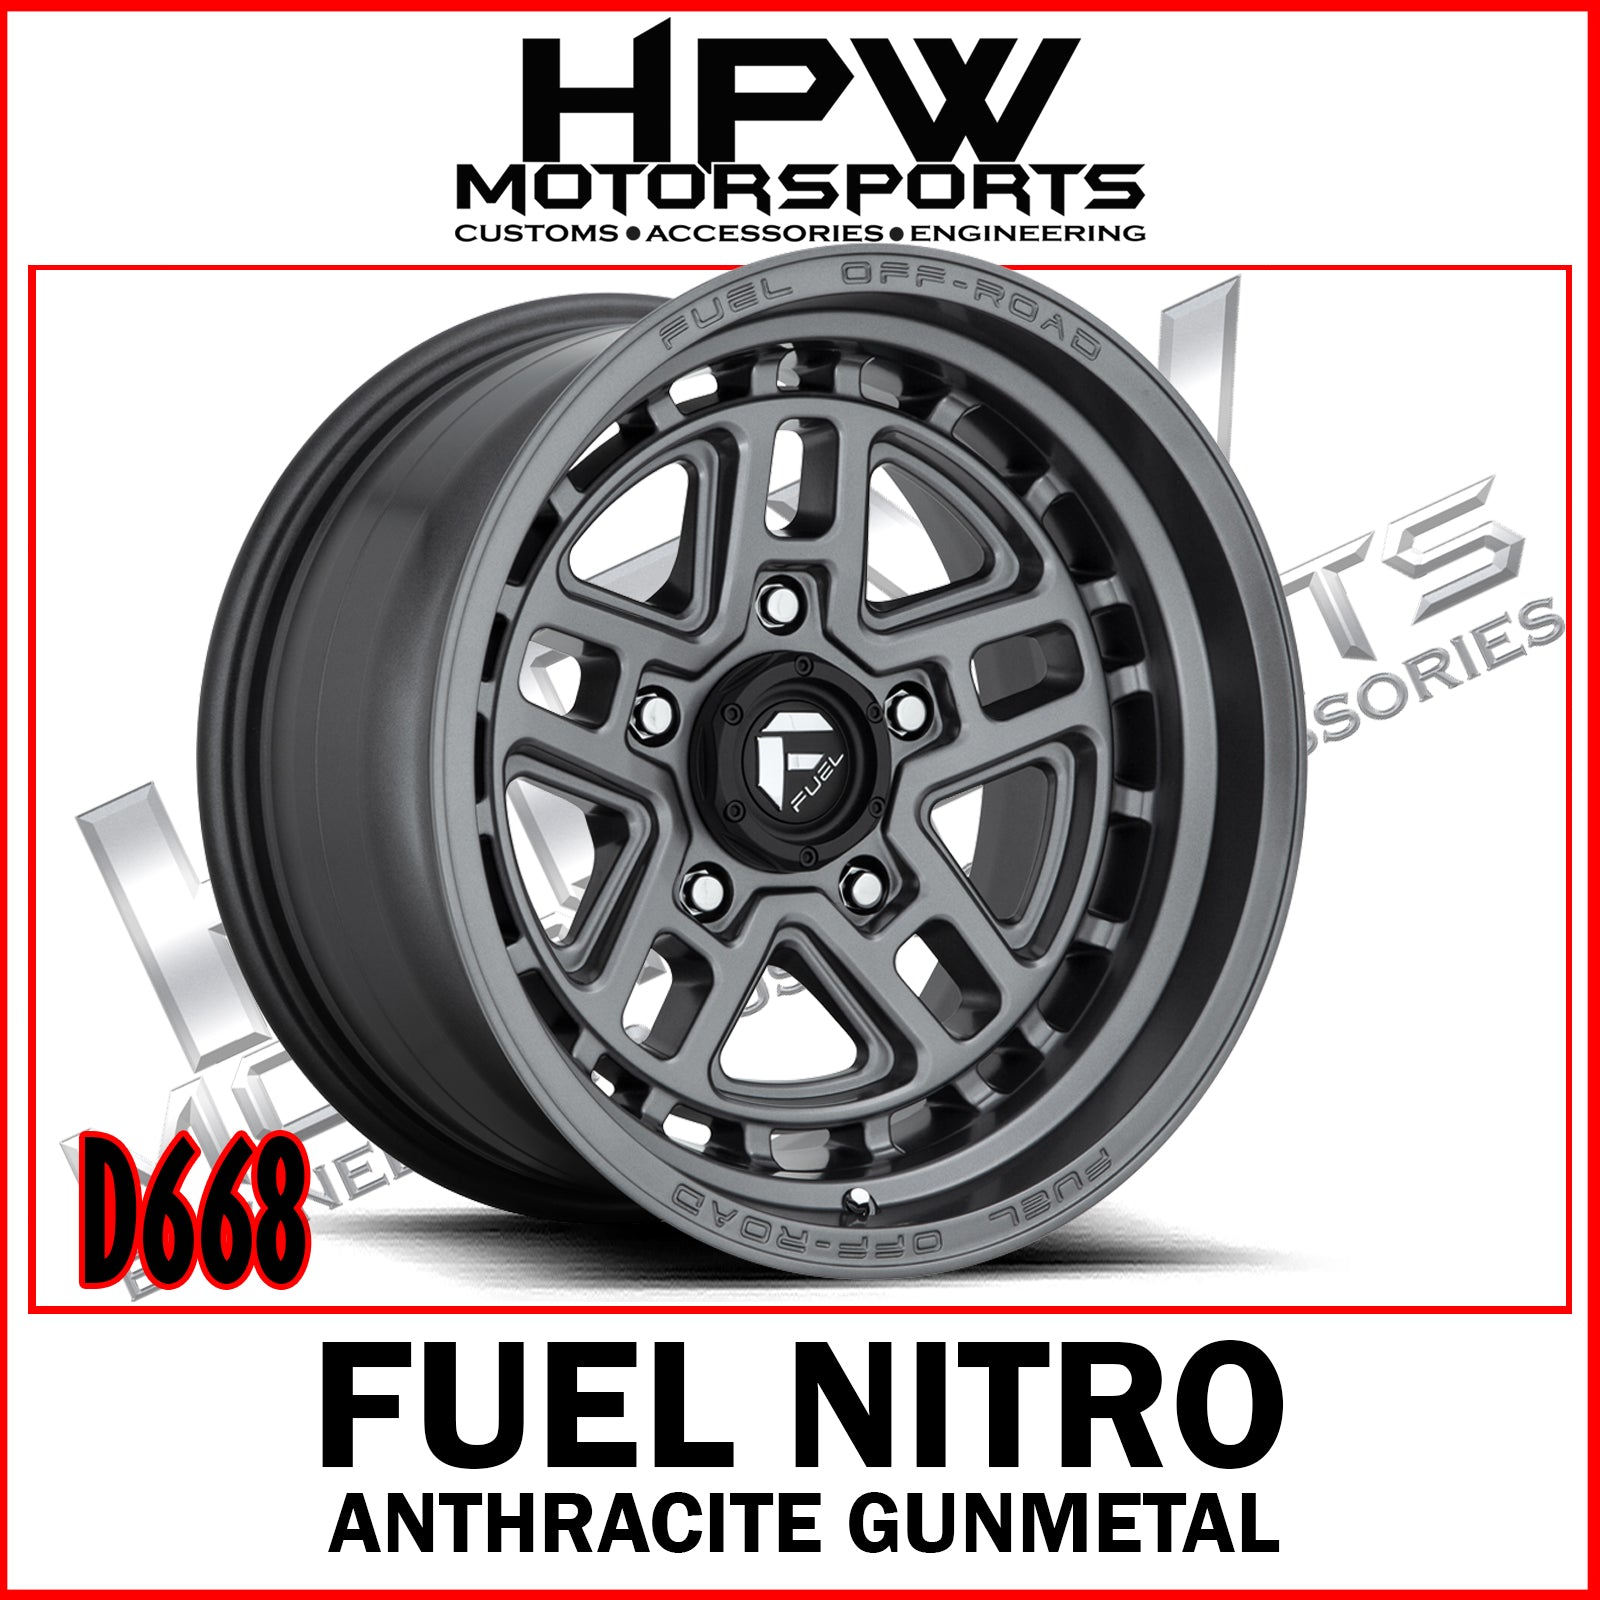 D668 FUEL NITRO - ANTHRACITE GUNMETAL - Set of 4